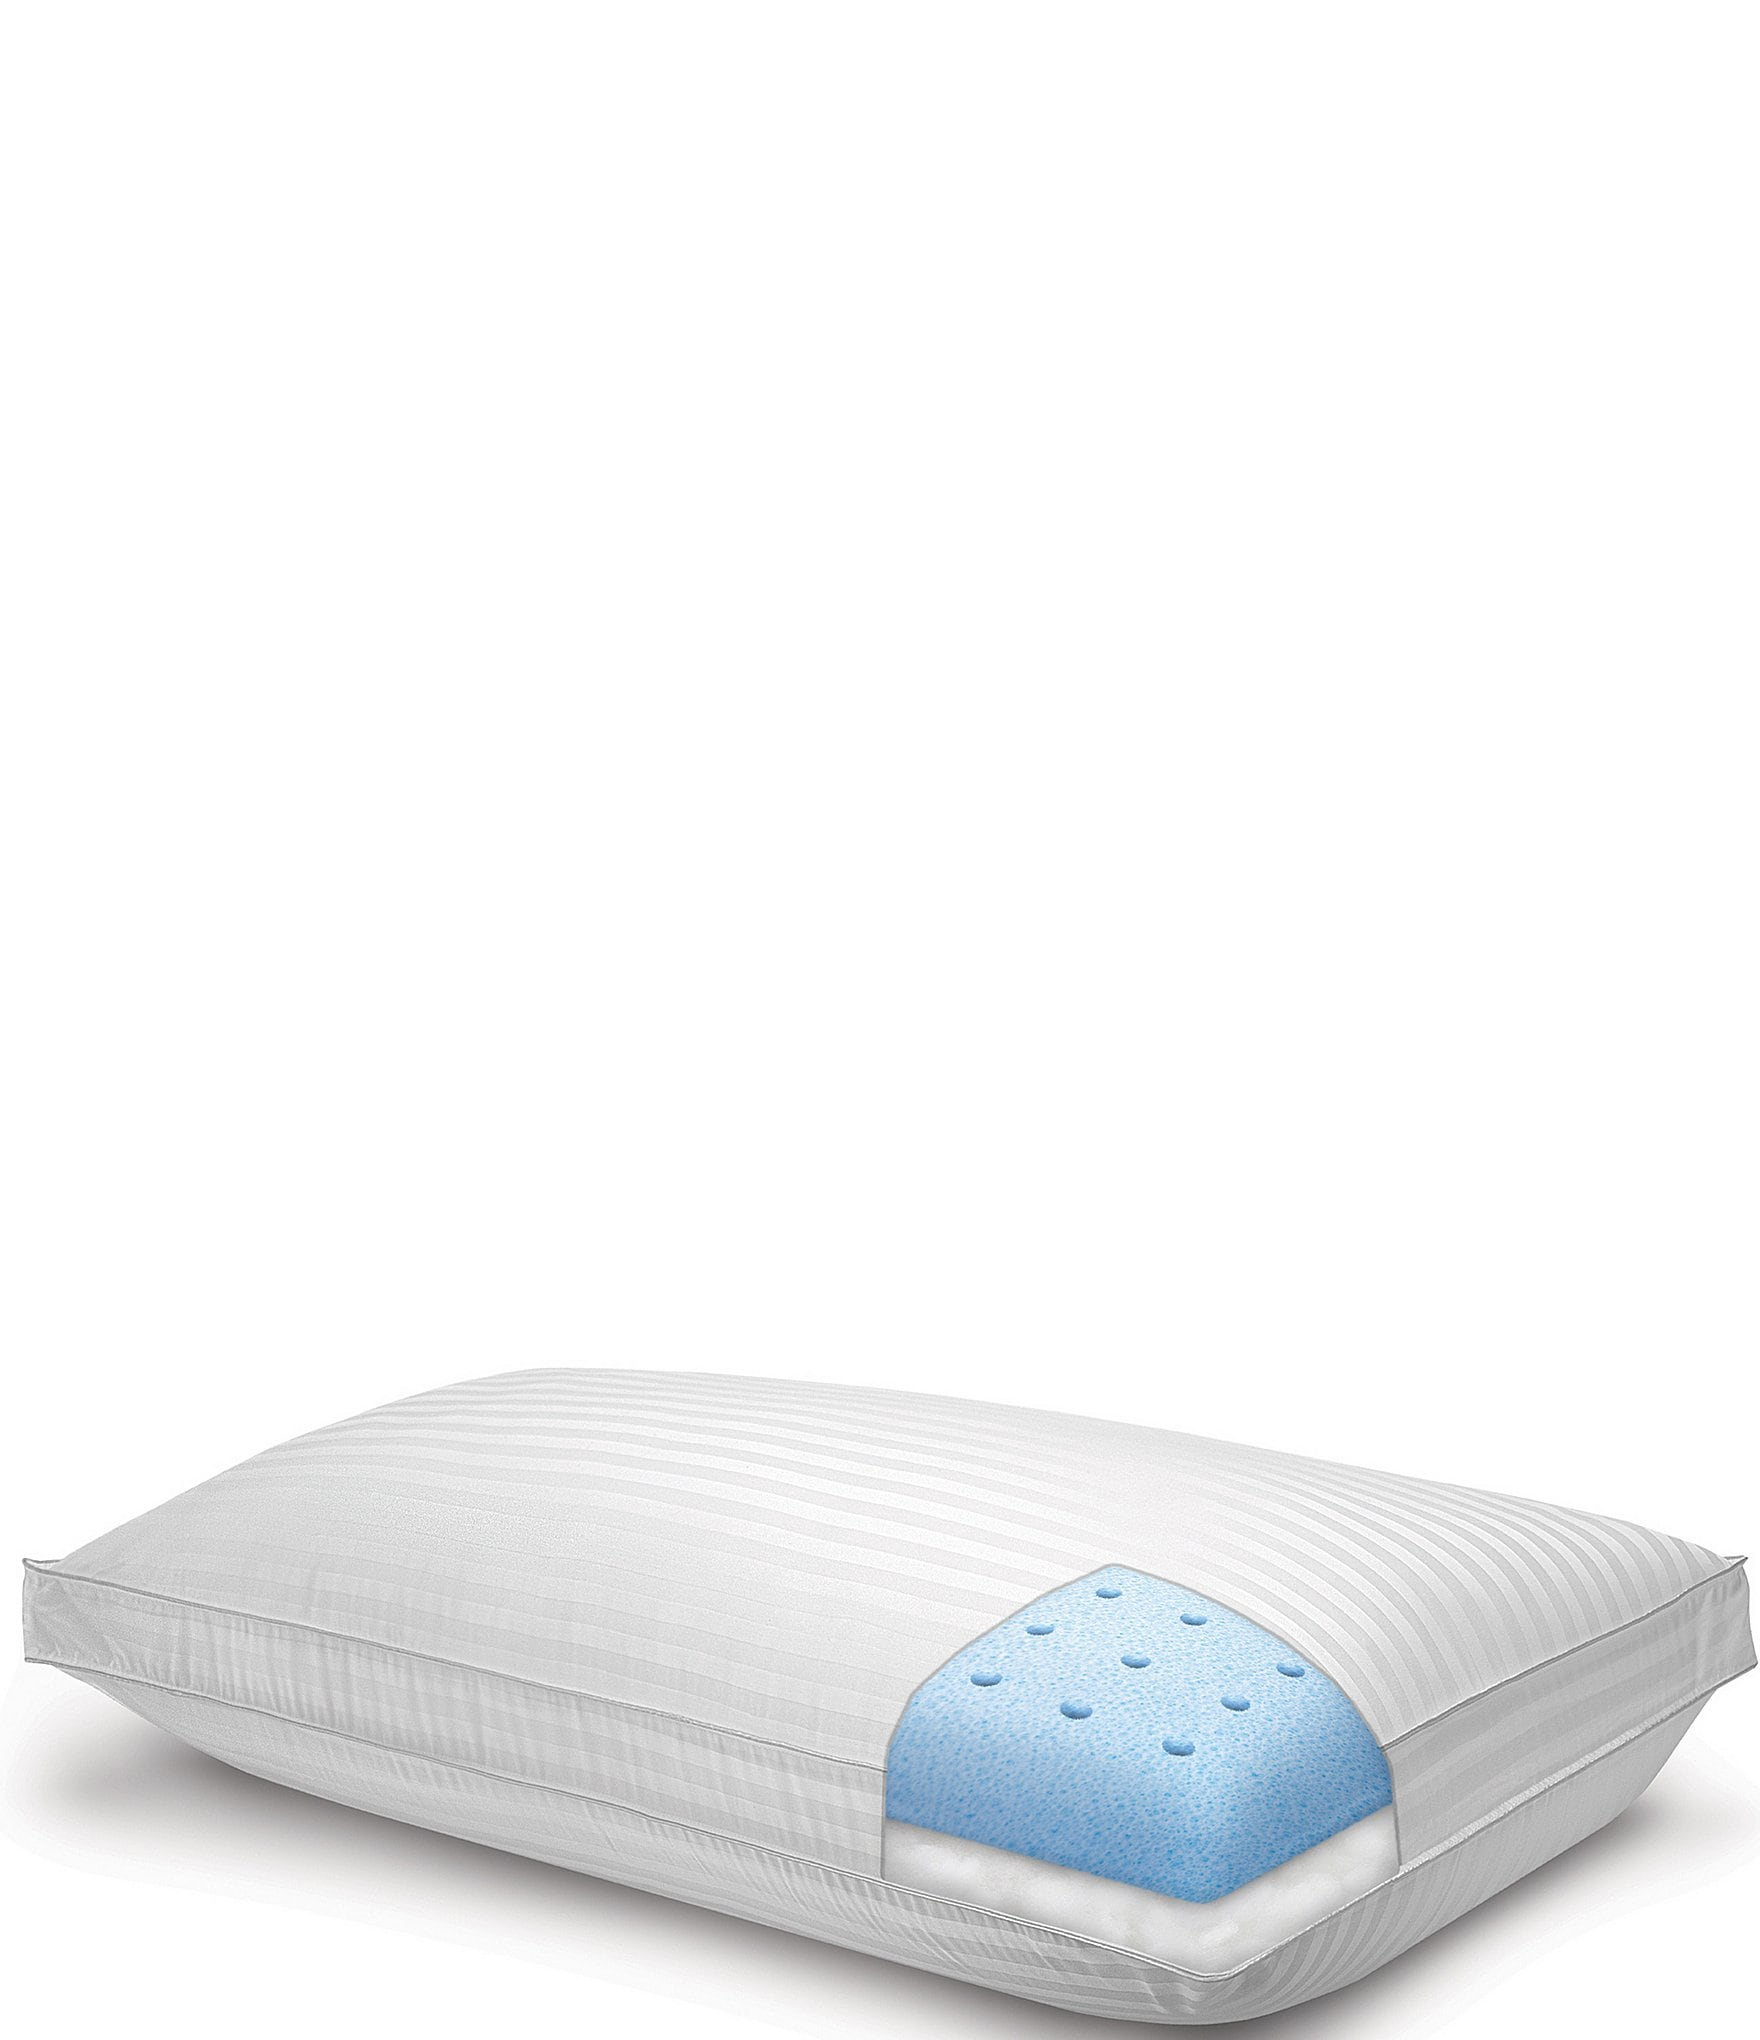 Sensorpedic Majestic Icool Dual Comfort 500 Thread Count